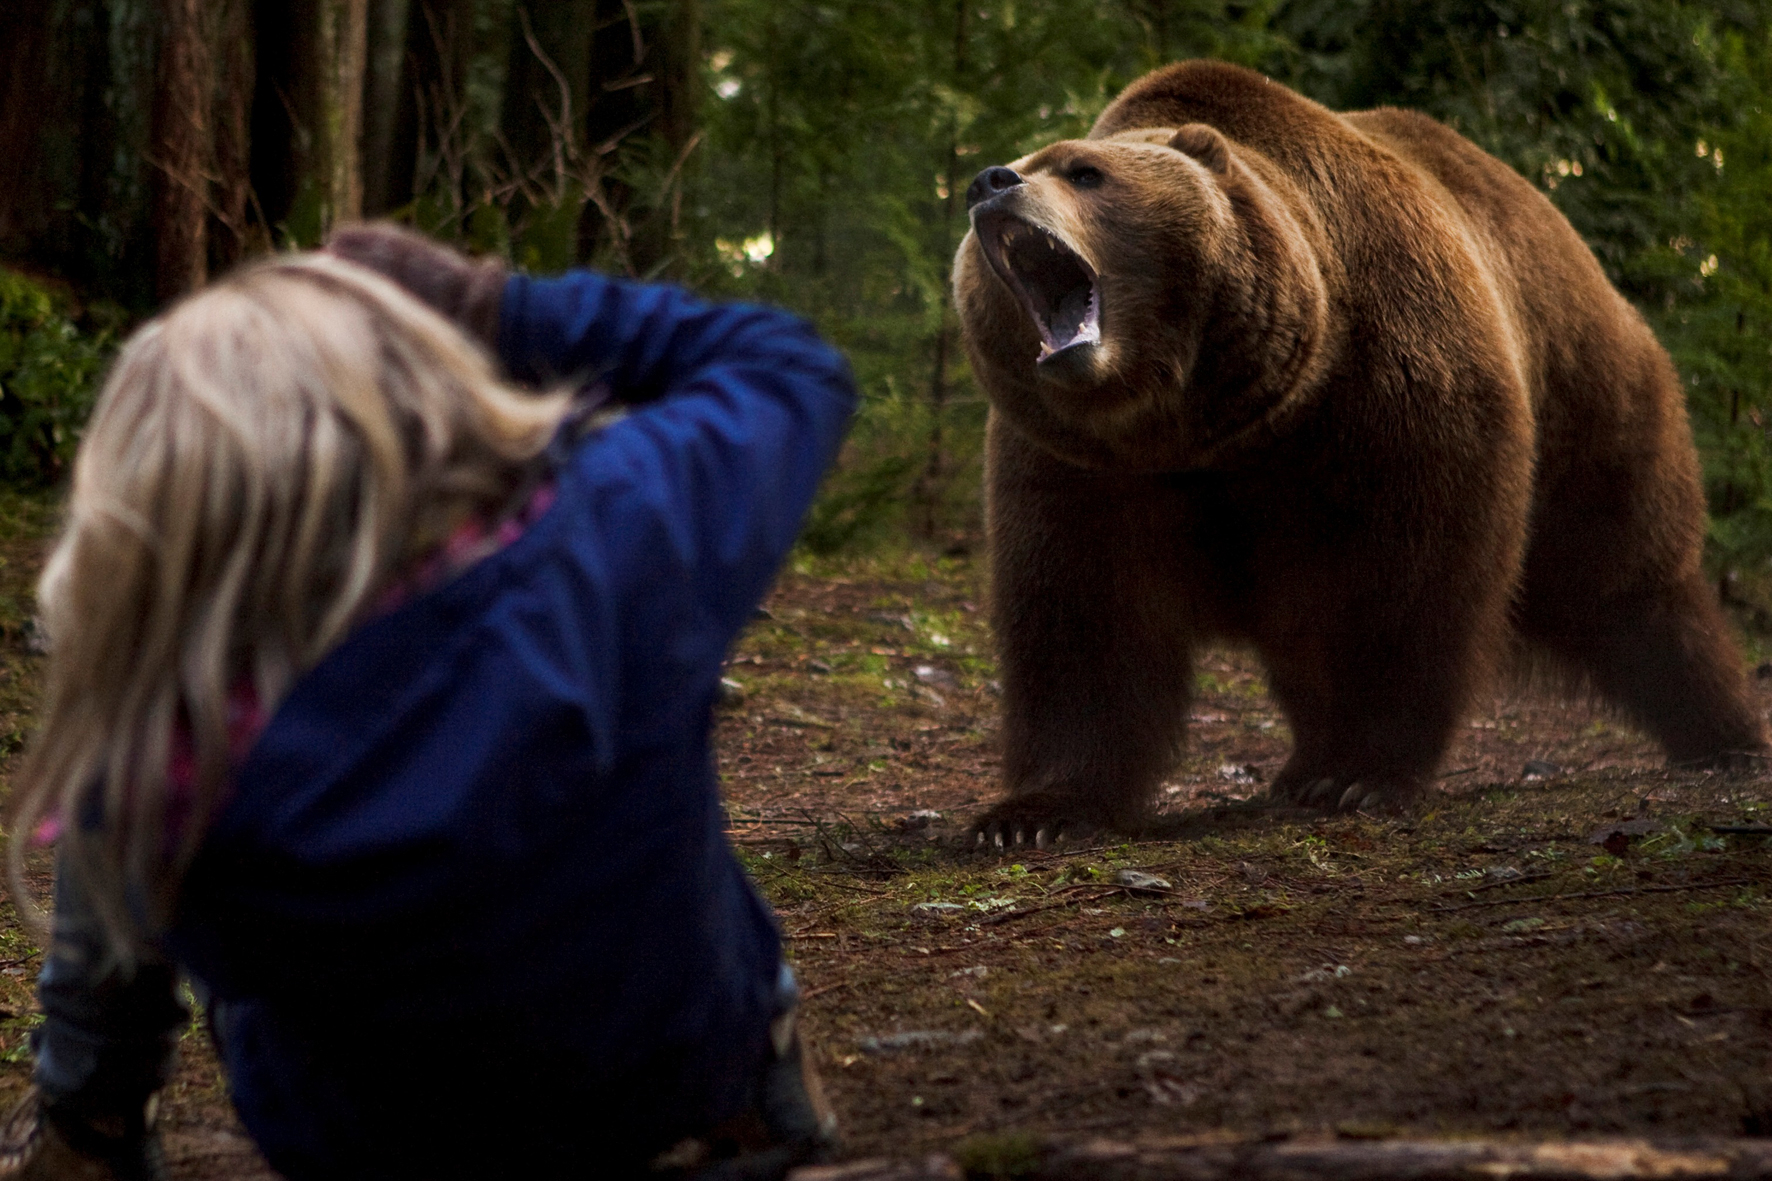 Night of the Grizzly - The Complete Tim Treadwell Report and Bear attack last photo